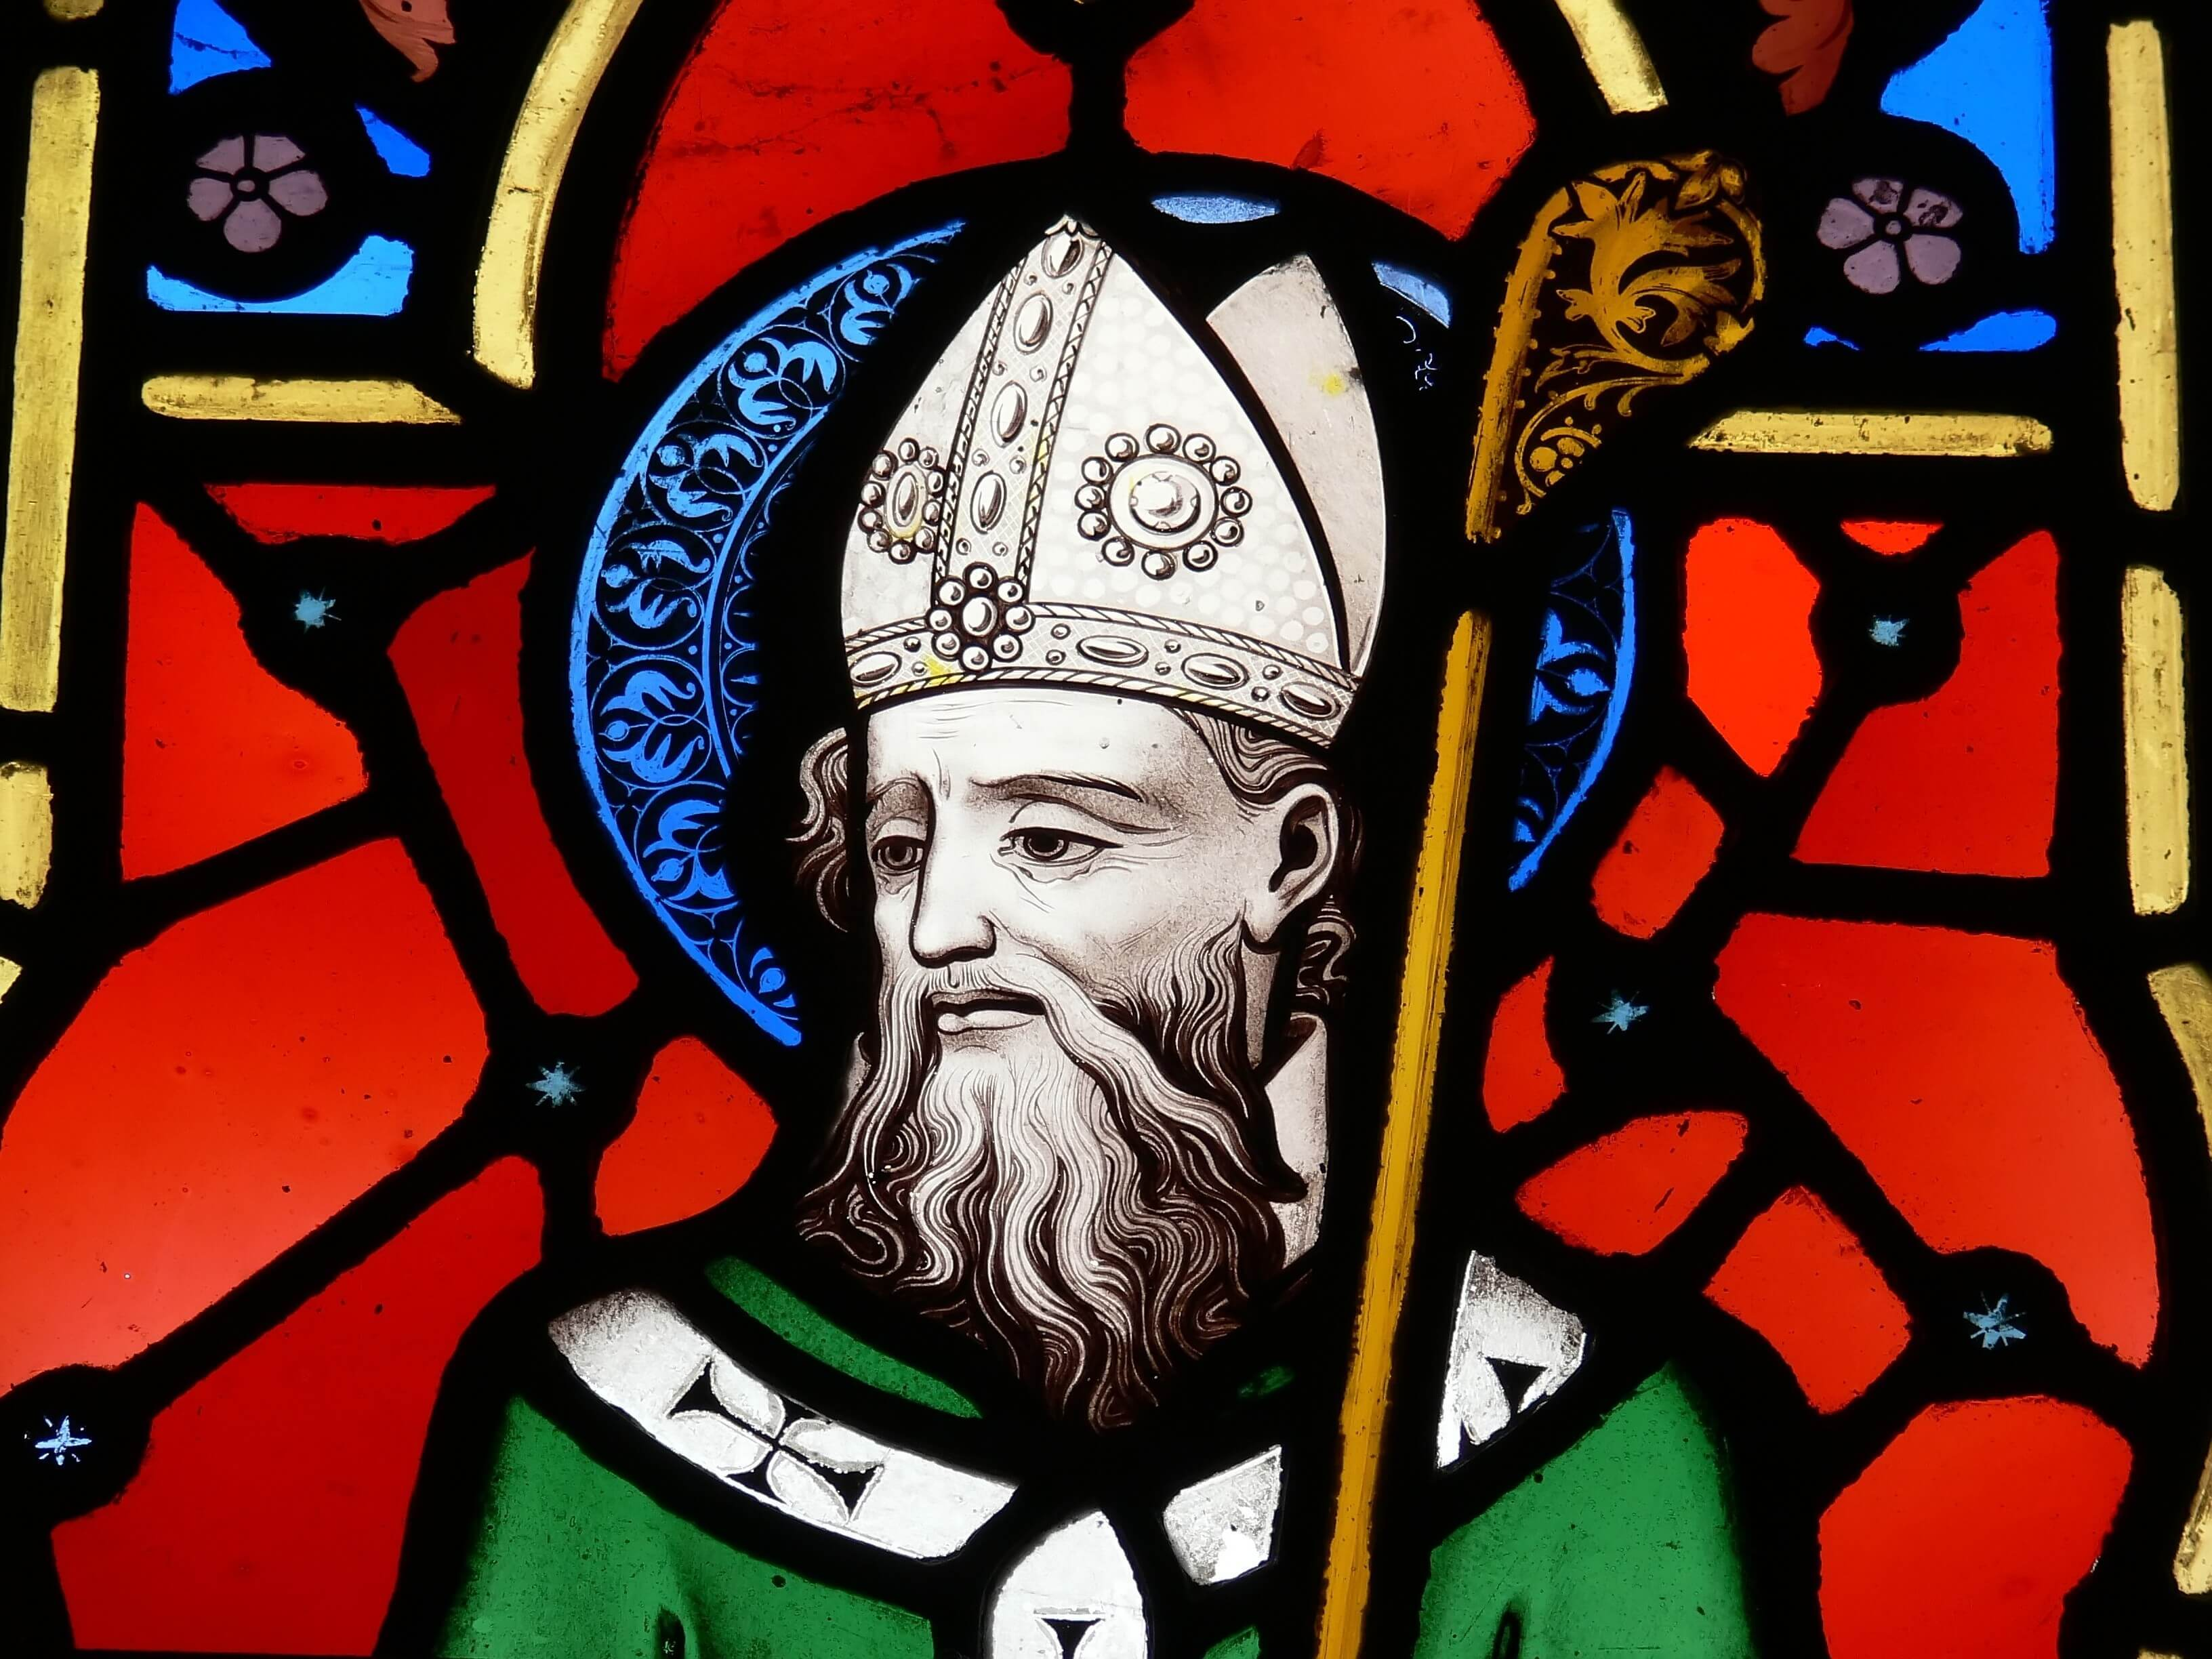 St. Patrick stained-glass window